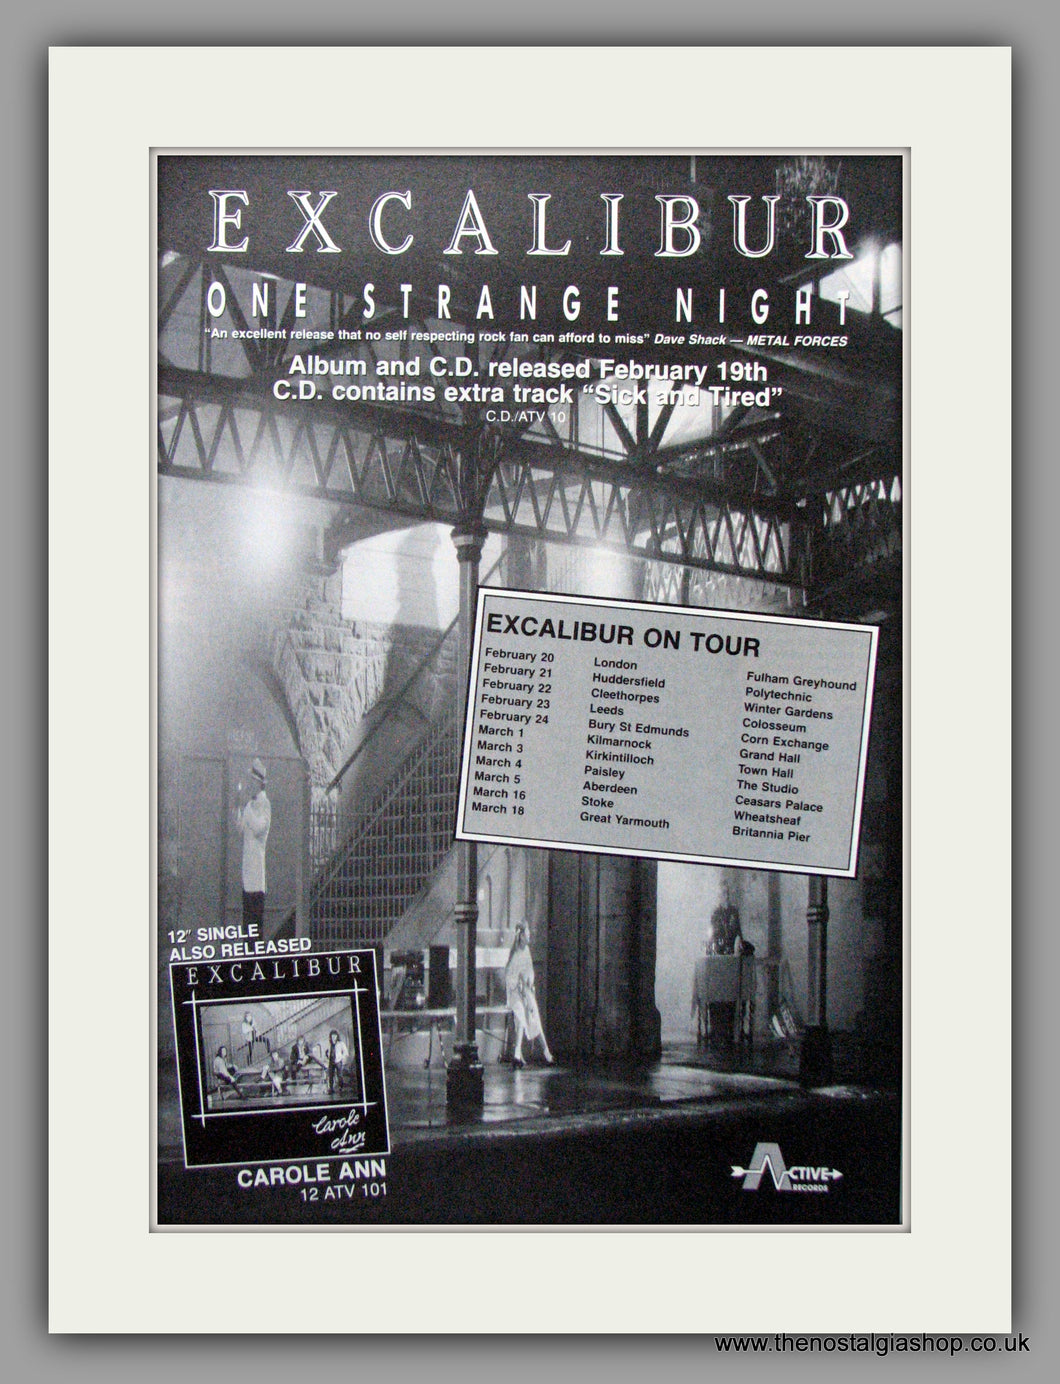 Excalibur - One Strange Night Plus Tour Dates. Original Advert 1990 (ref AD50250)